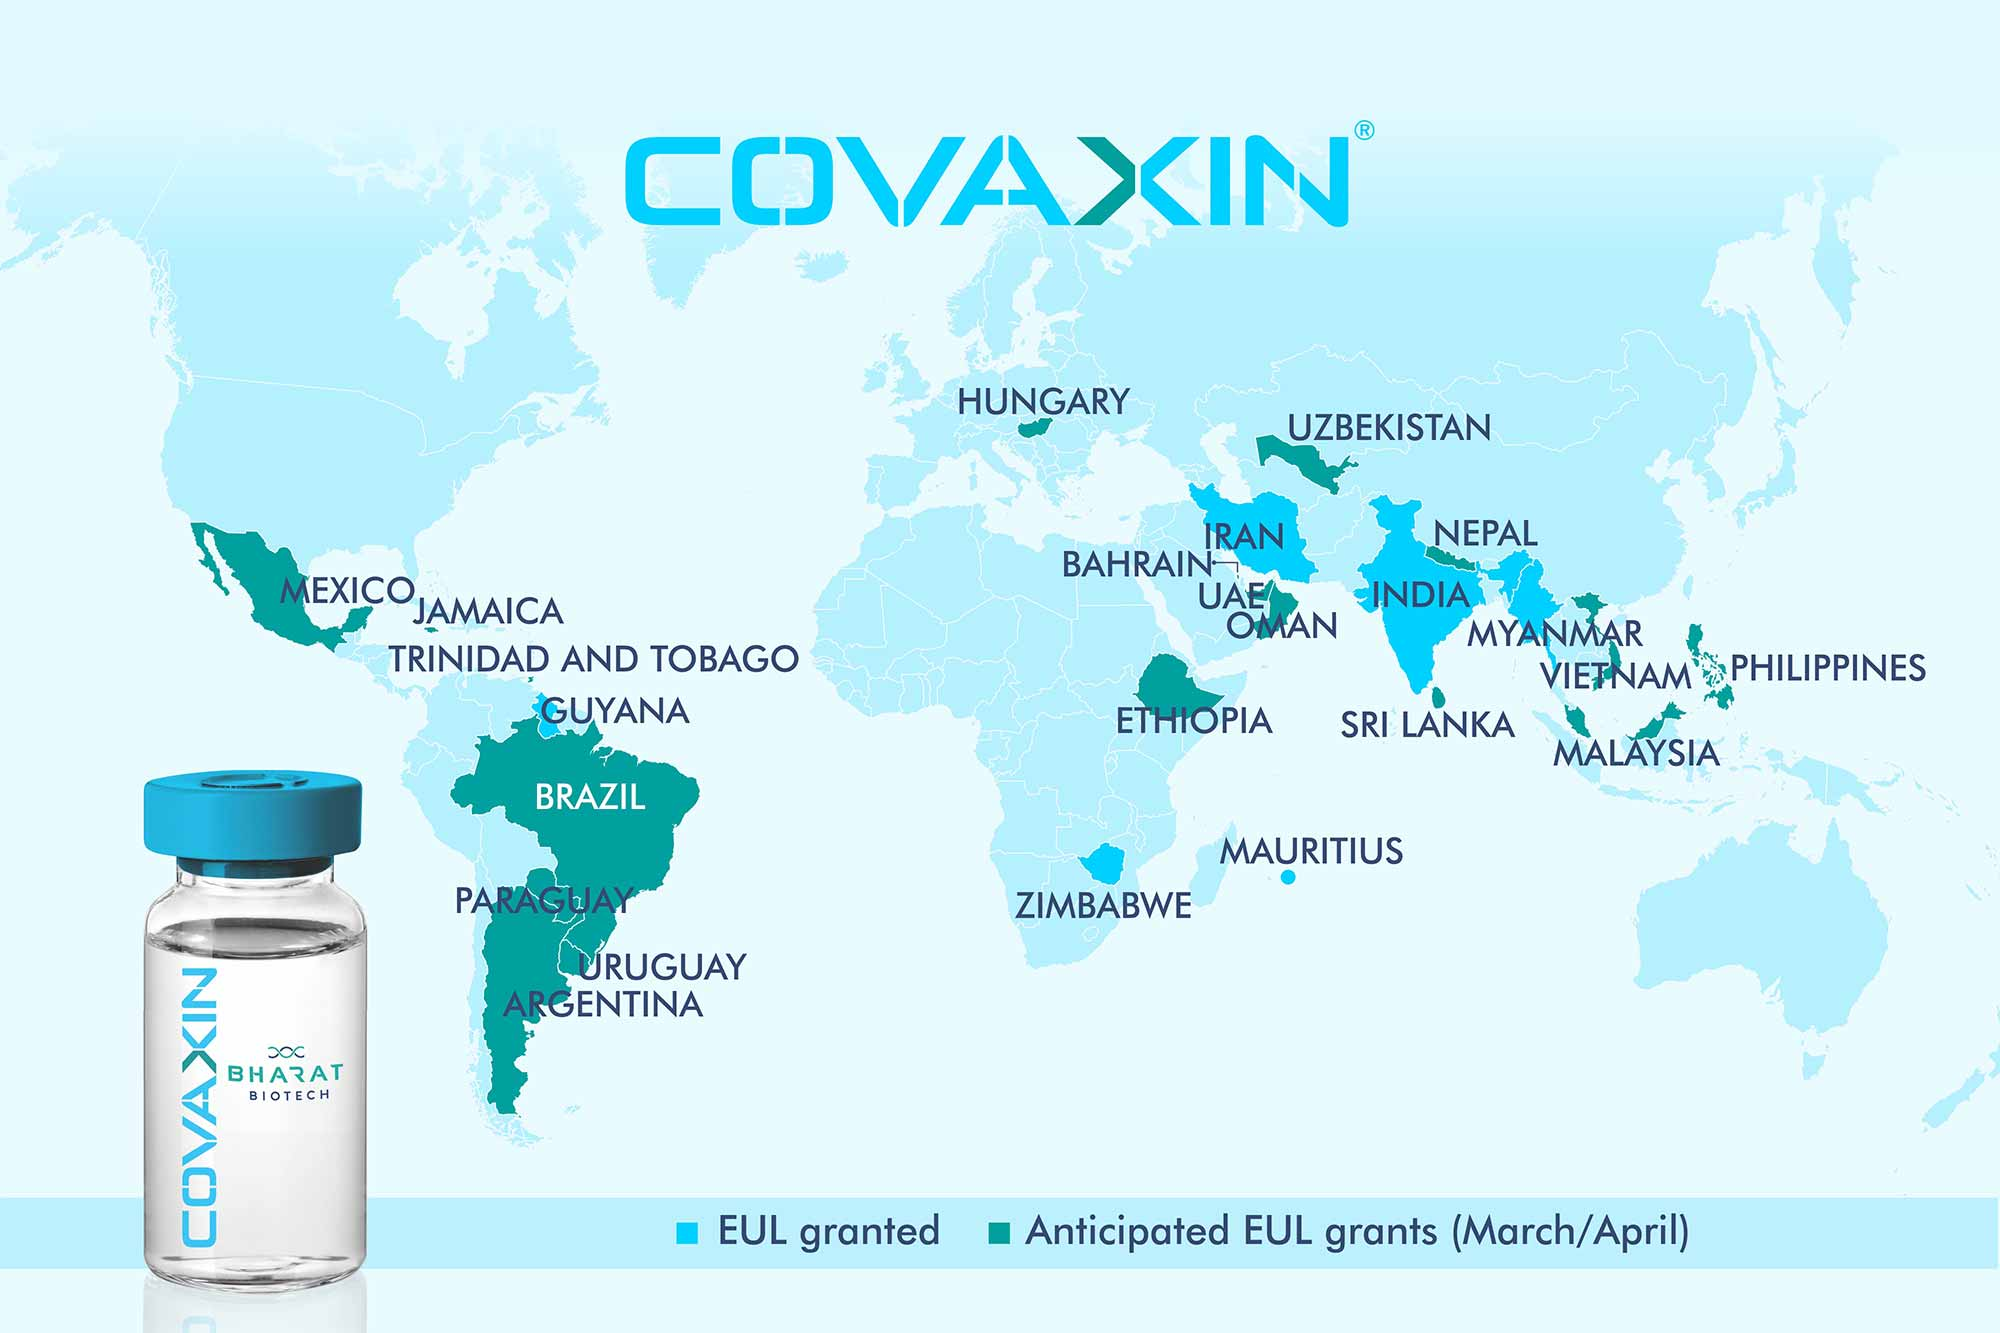 Covaxin world map